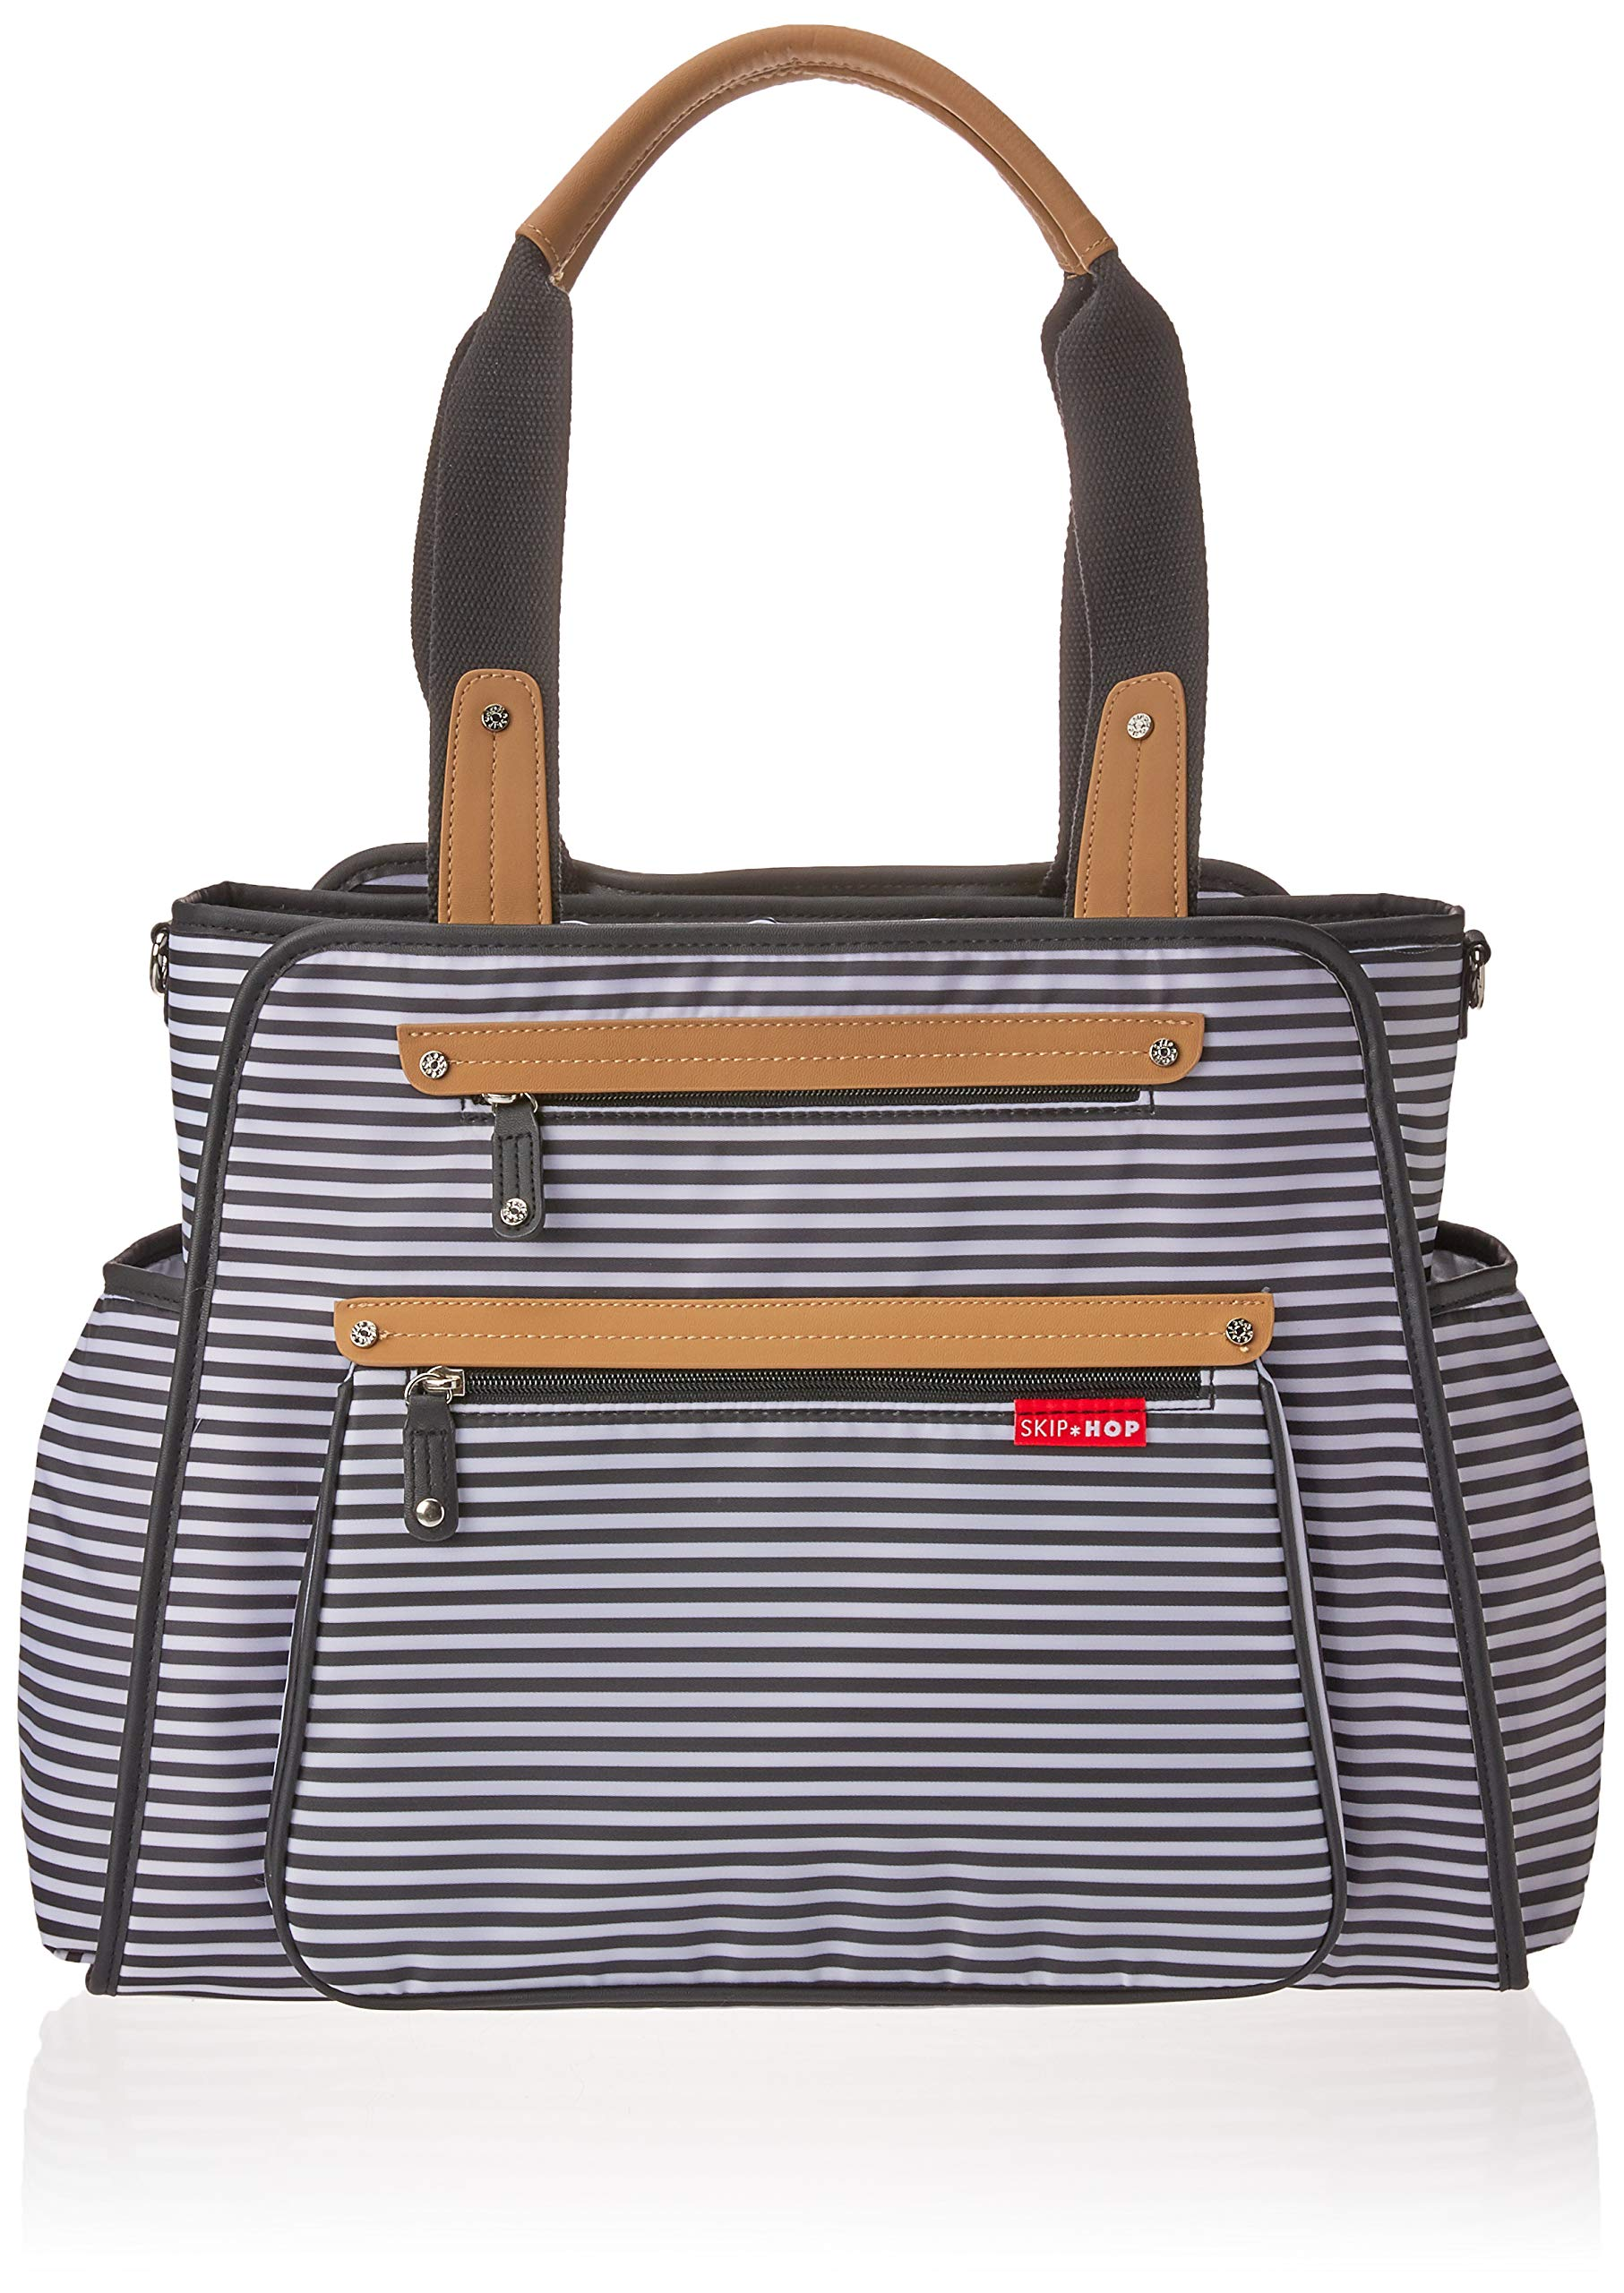 Skip Hop Diaper Bag Tote with Matching Changing Pad, Grand Central, Black & White Stripe by Skip Hop (Image #1)